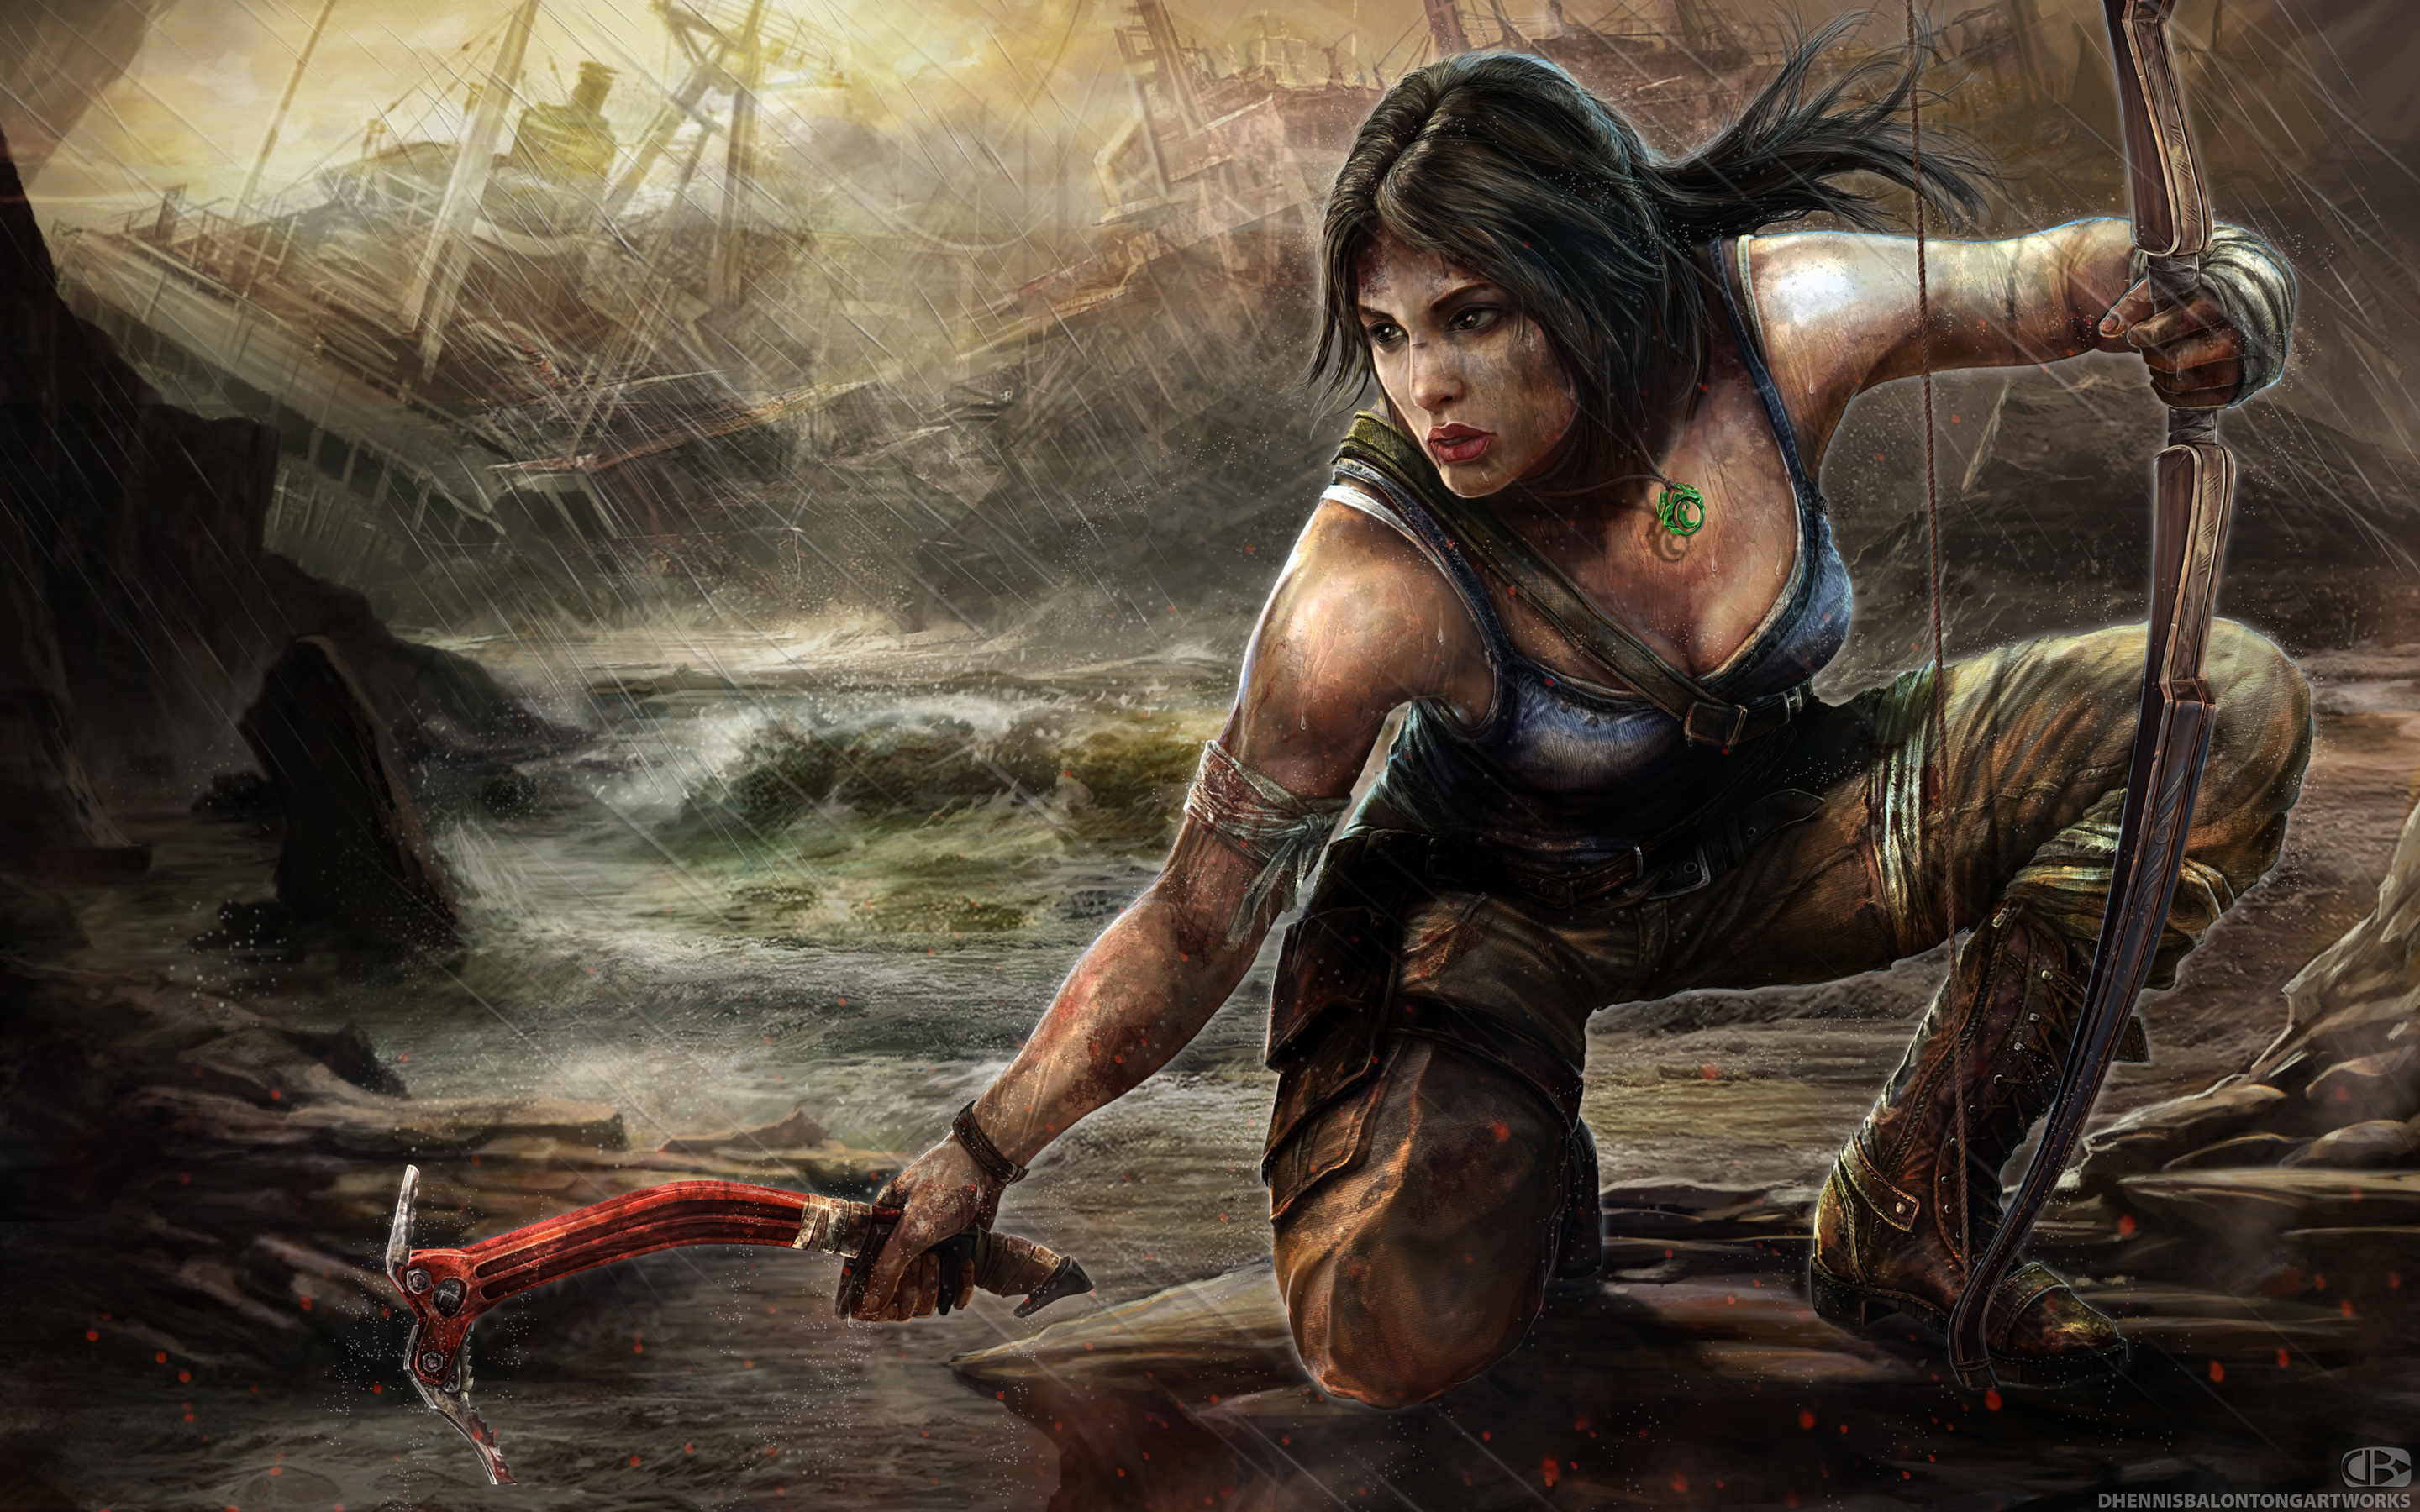 Lara Croft Tomb Raider Artwork 4154629 2880x1800 All For